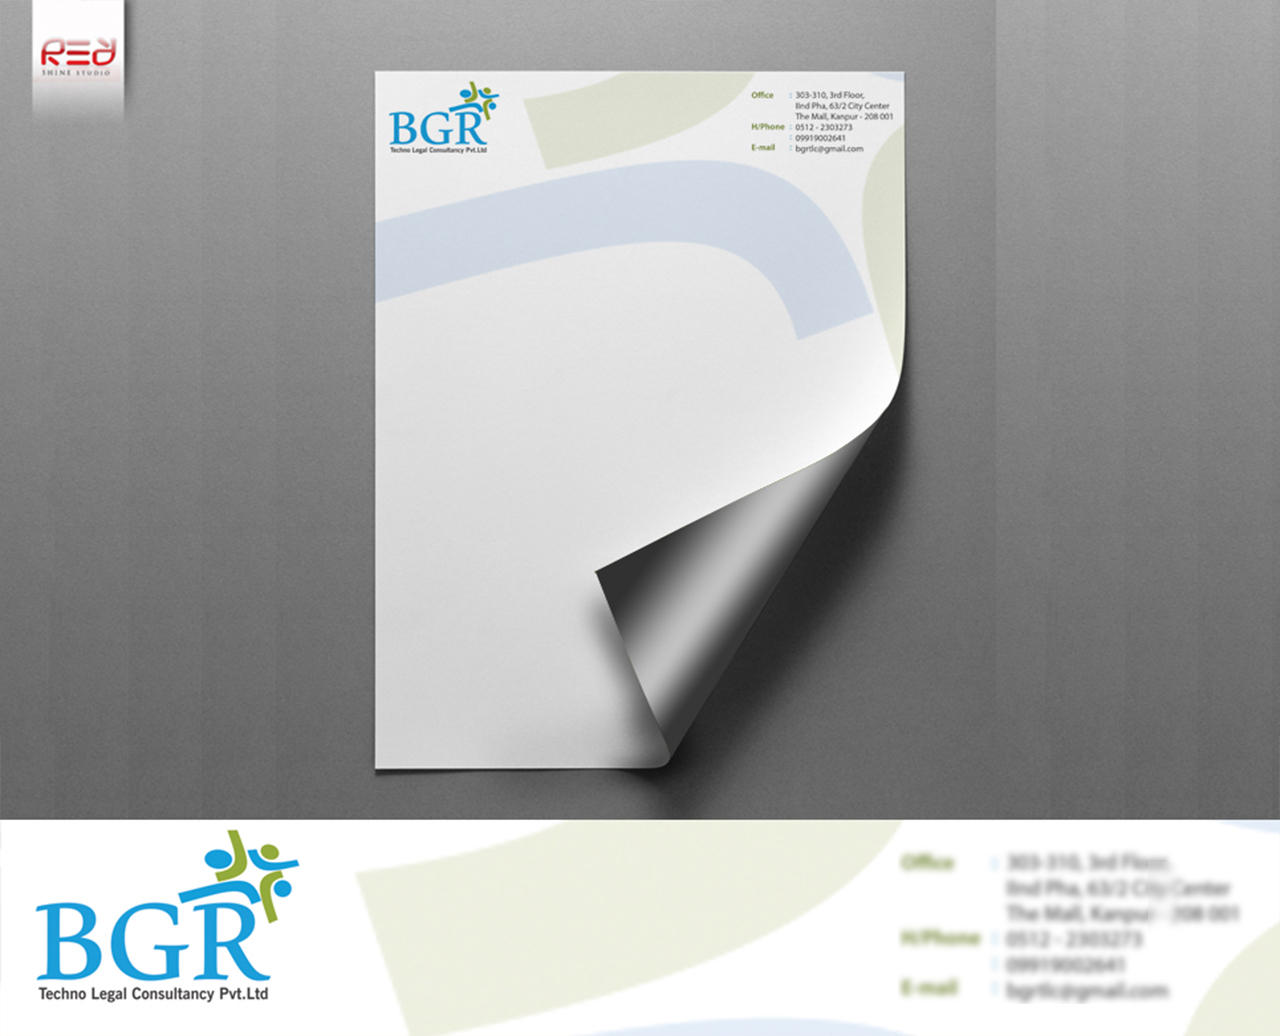 Corporate Custom Letterhead by redshinestudio - 78245